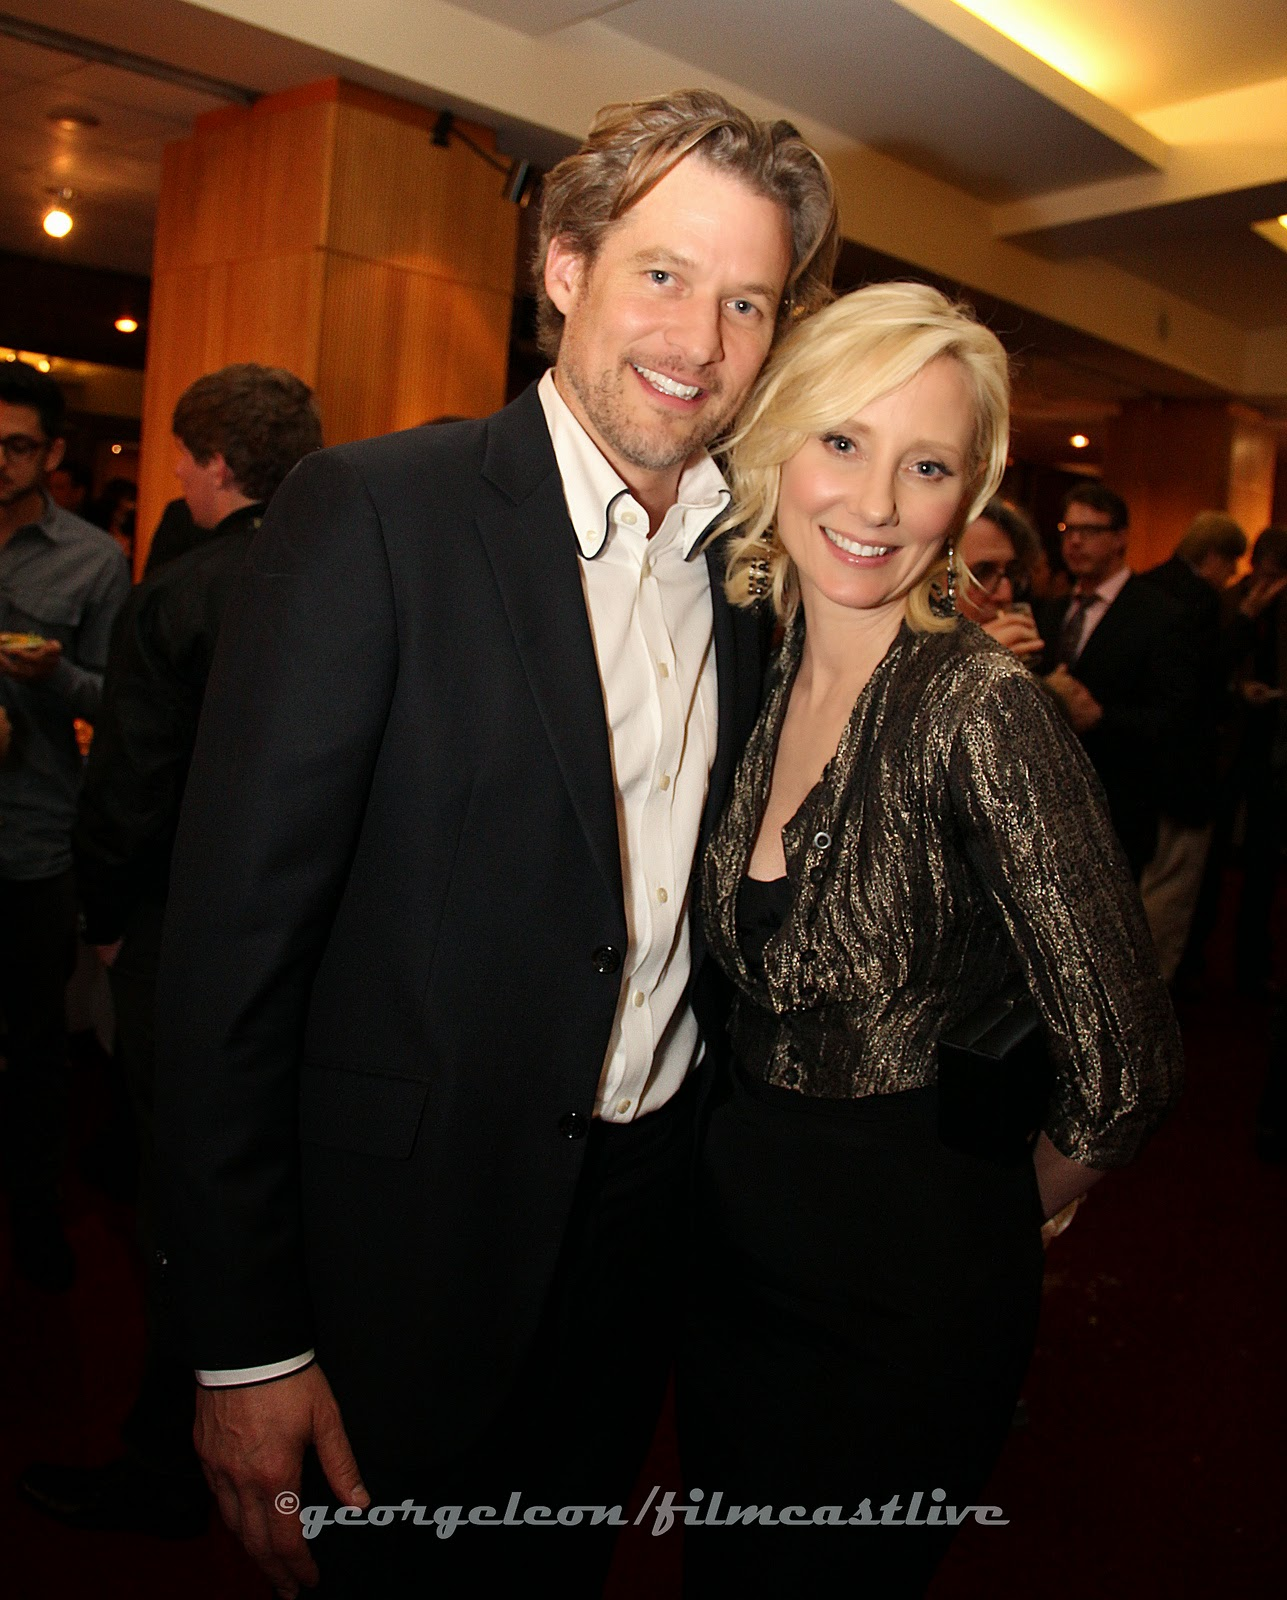 James Tucker, Anne Heche © george leon / filmcastlive